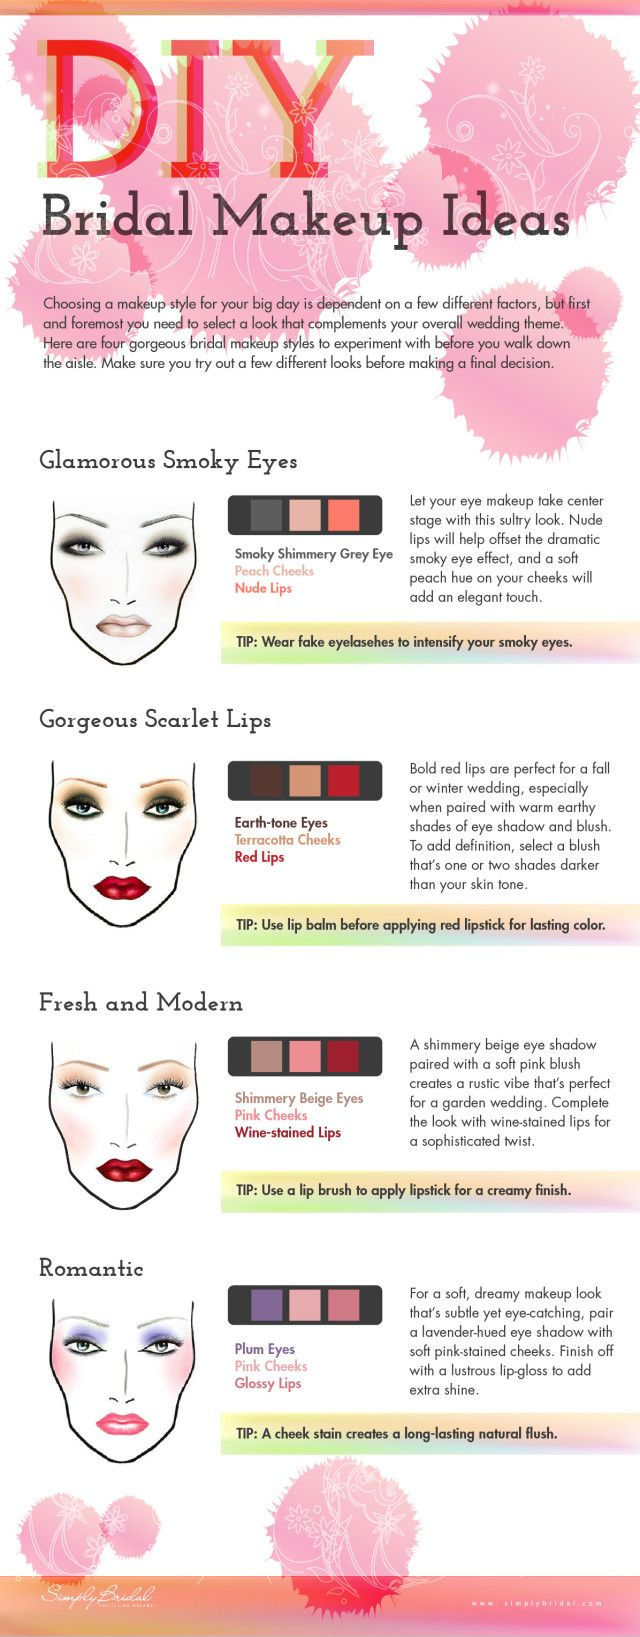 Save time and money by doing your own makeup for your wedding! Check out these tips for wedding day makeup. | Mary Kay